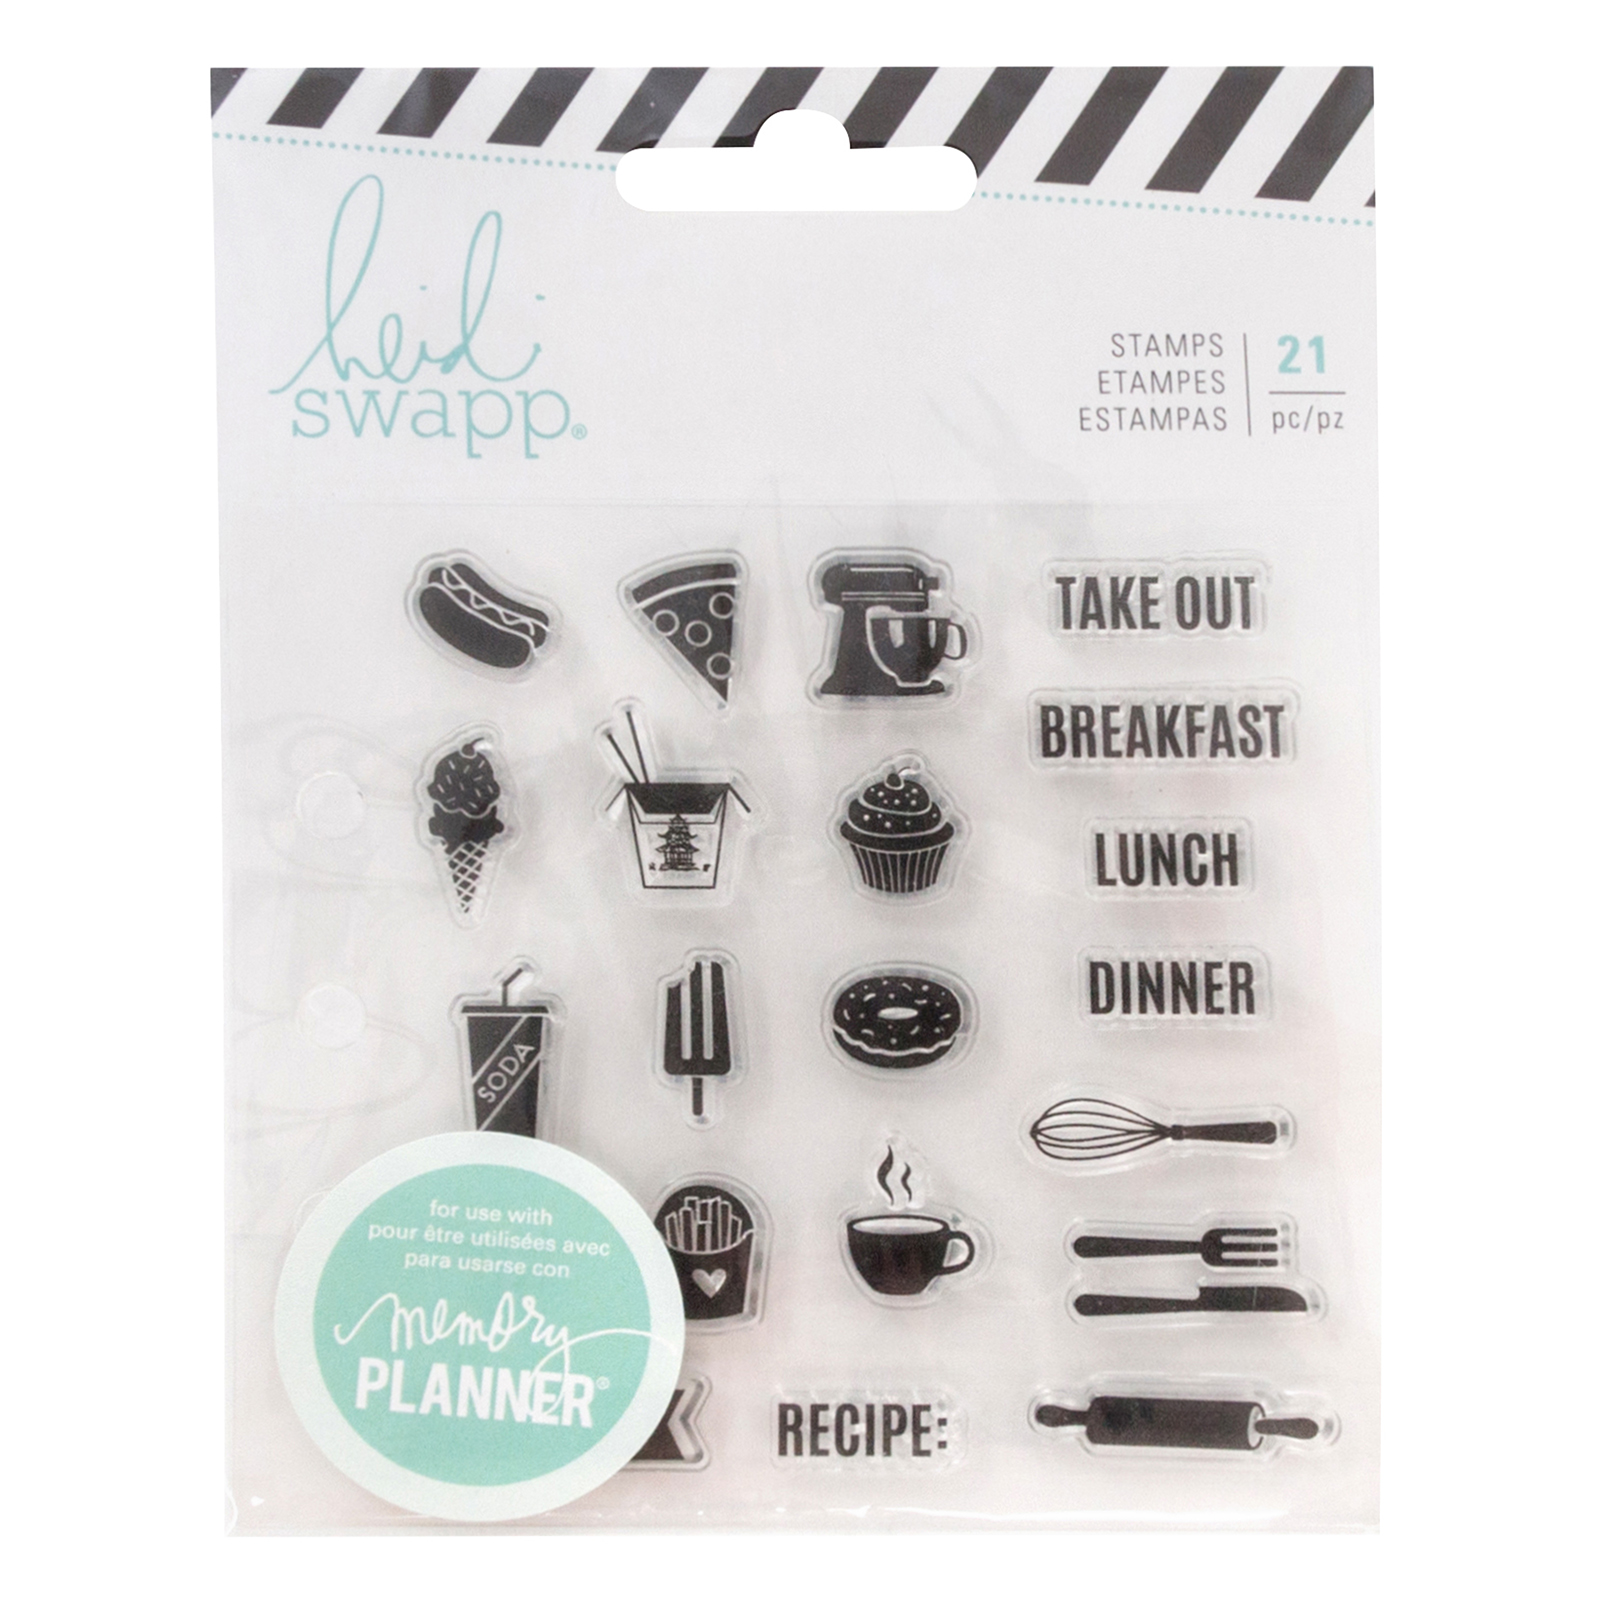 Heidi Swapp Memory Planner Clear Stamps Fresh Start, Food에 대한 이미지 검색결과